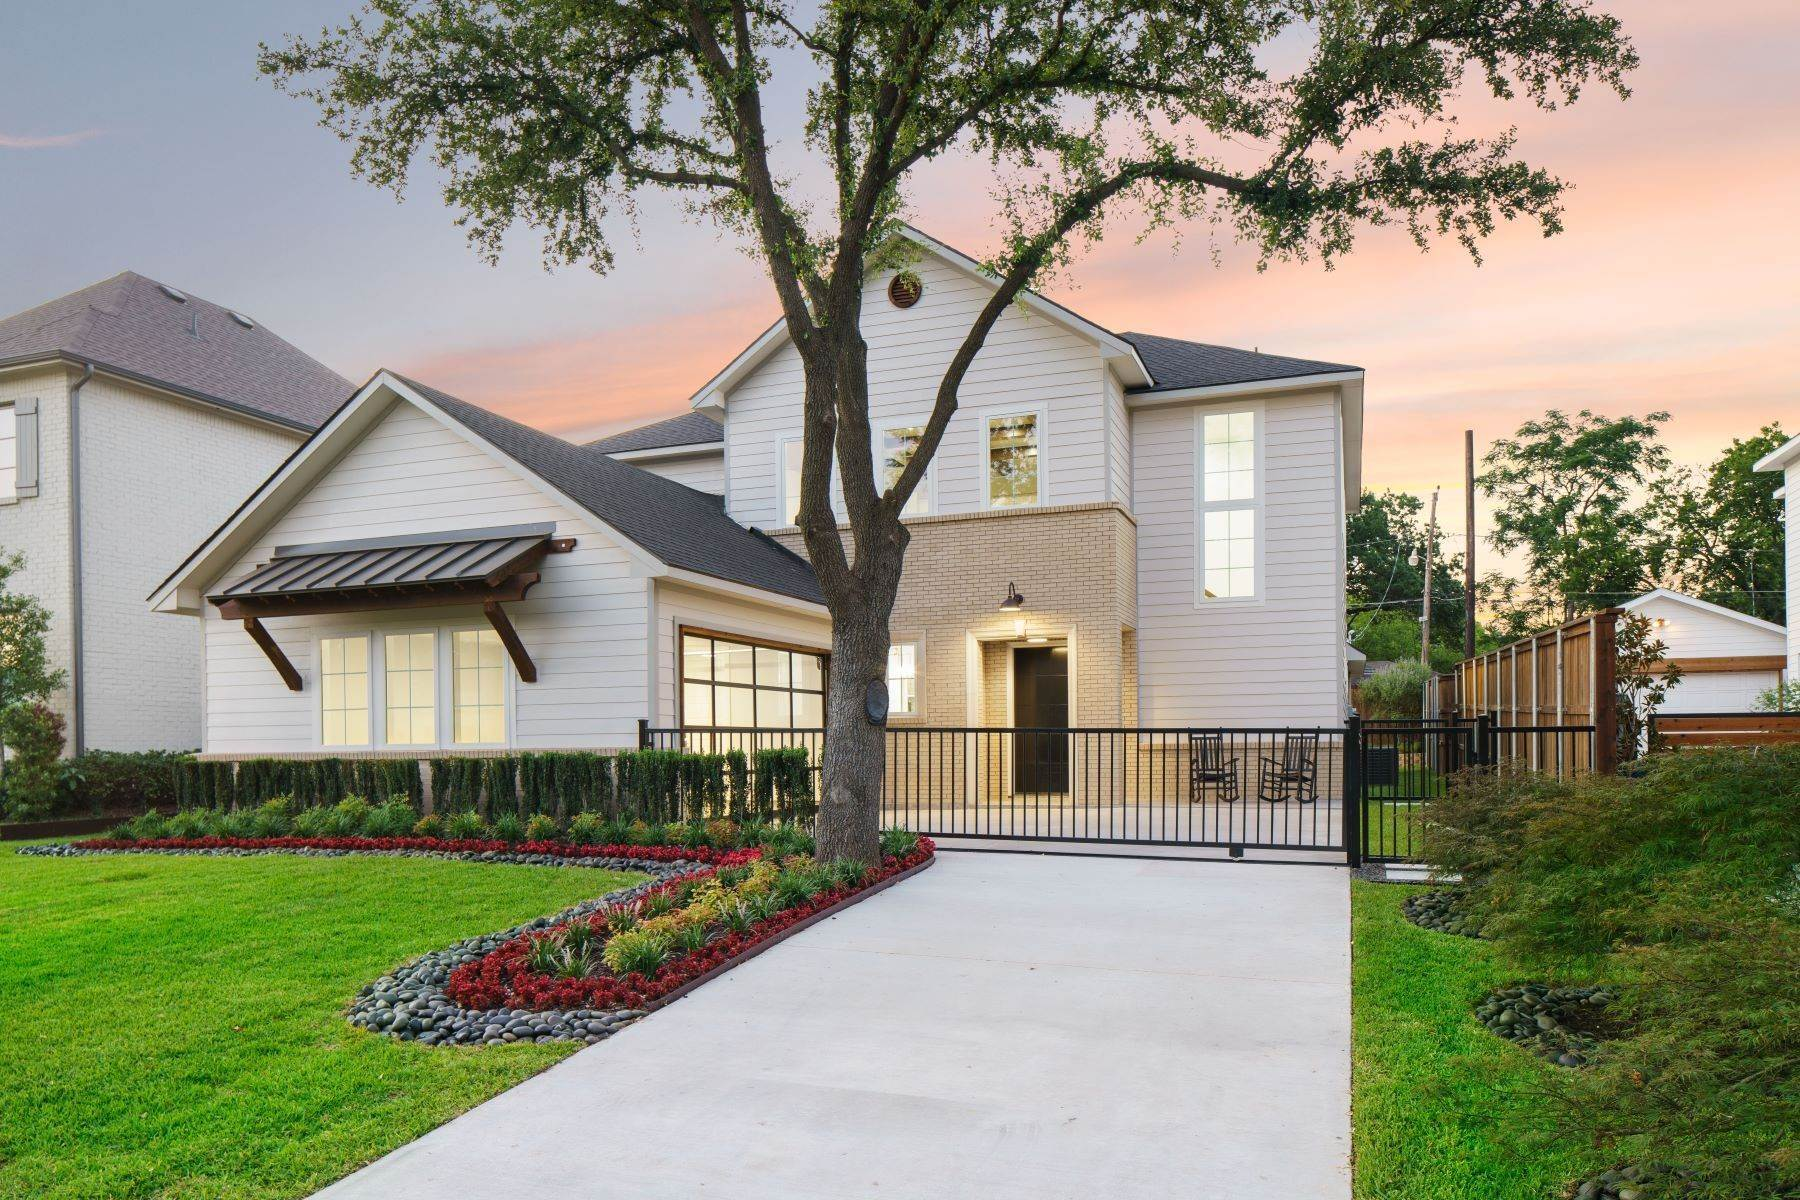 3. Single Family Homes for Sale at Midway Hollow Modern Transitional 3935 Lively Lane Dallas, Texas 75220 United States